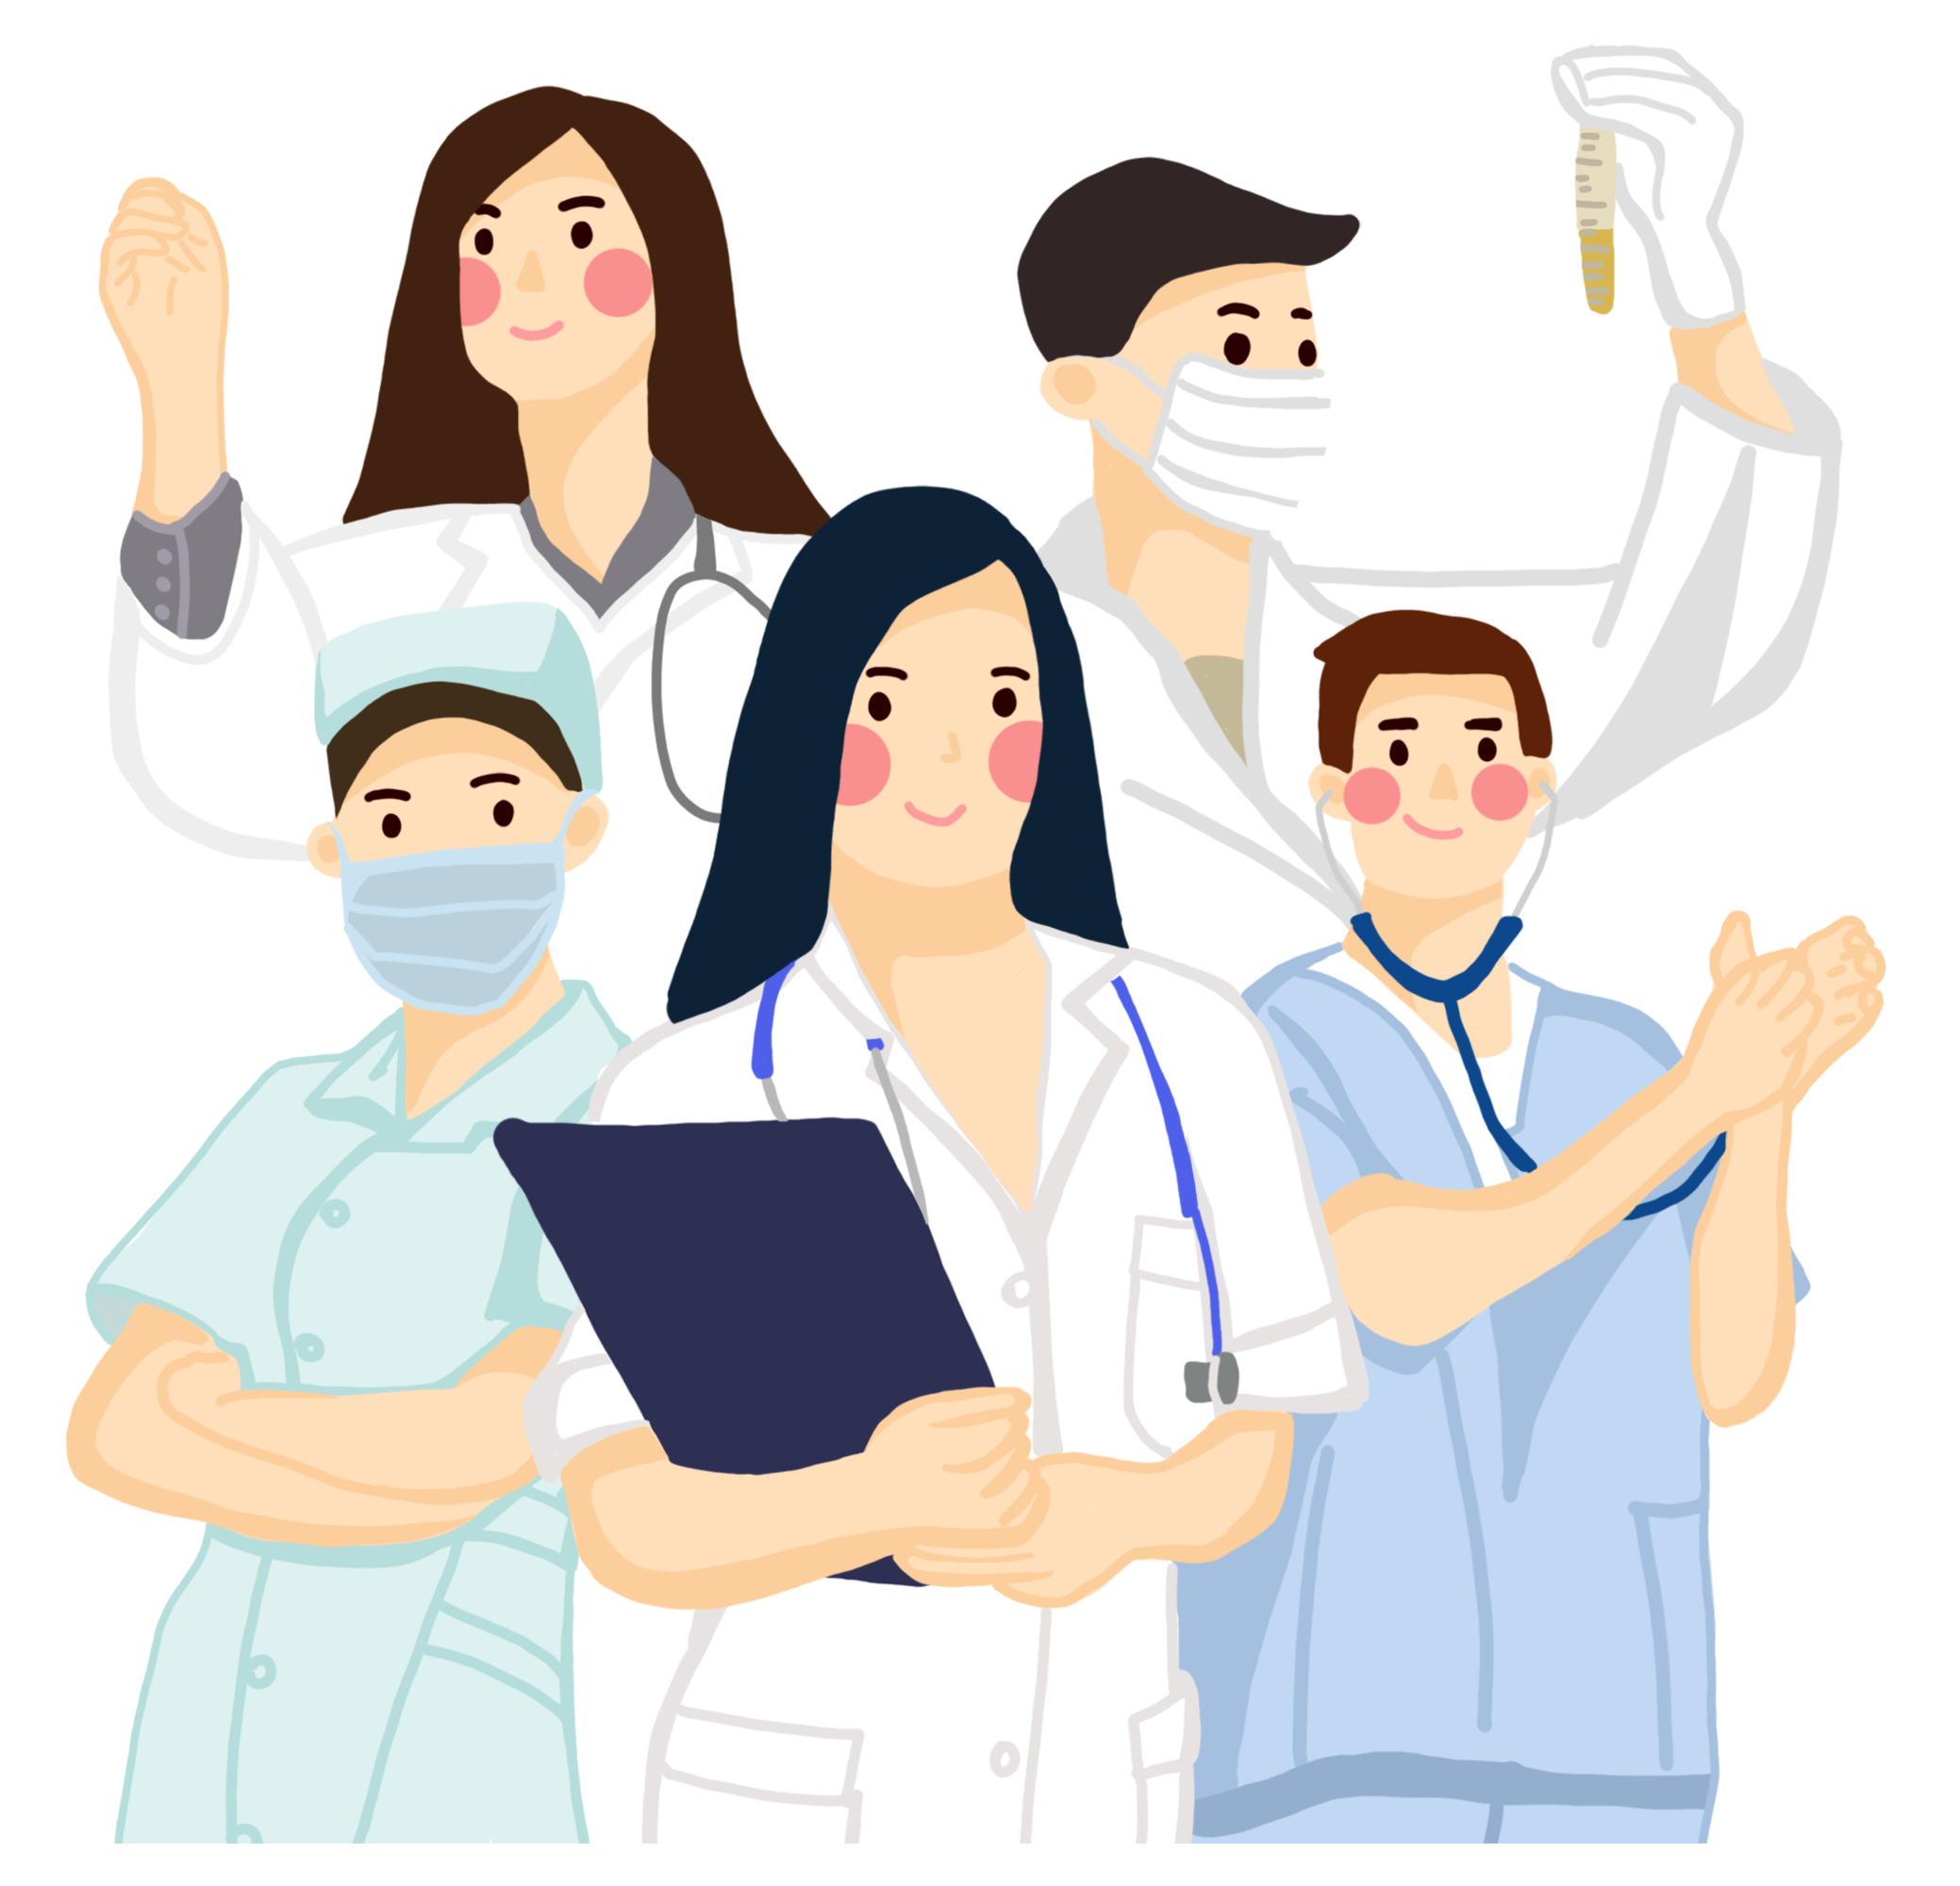 —Pngtree—medical medical class medical personnel_3851411